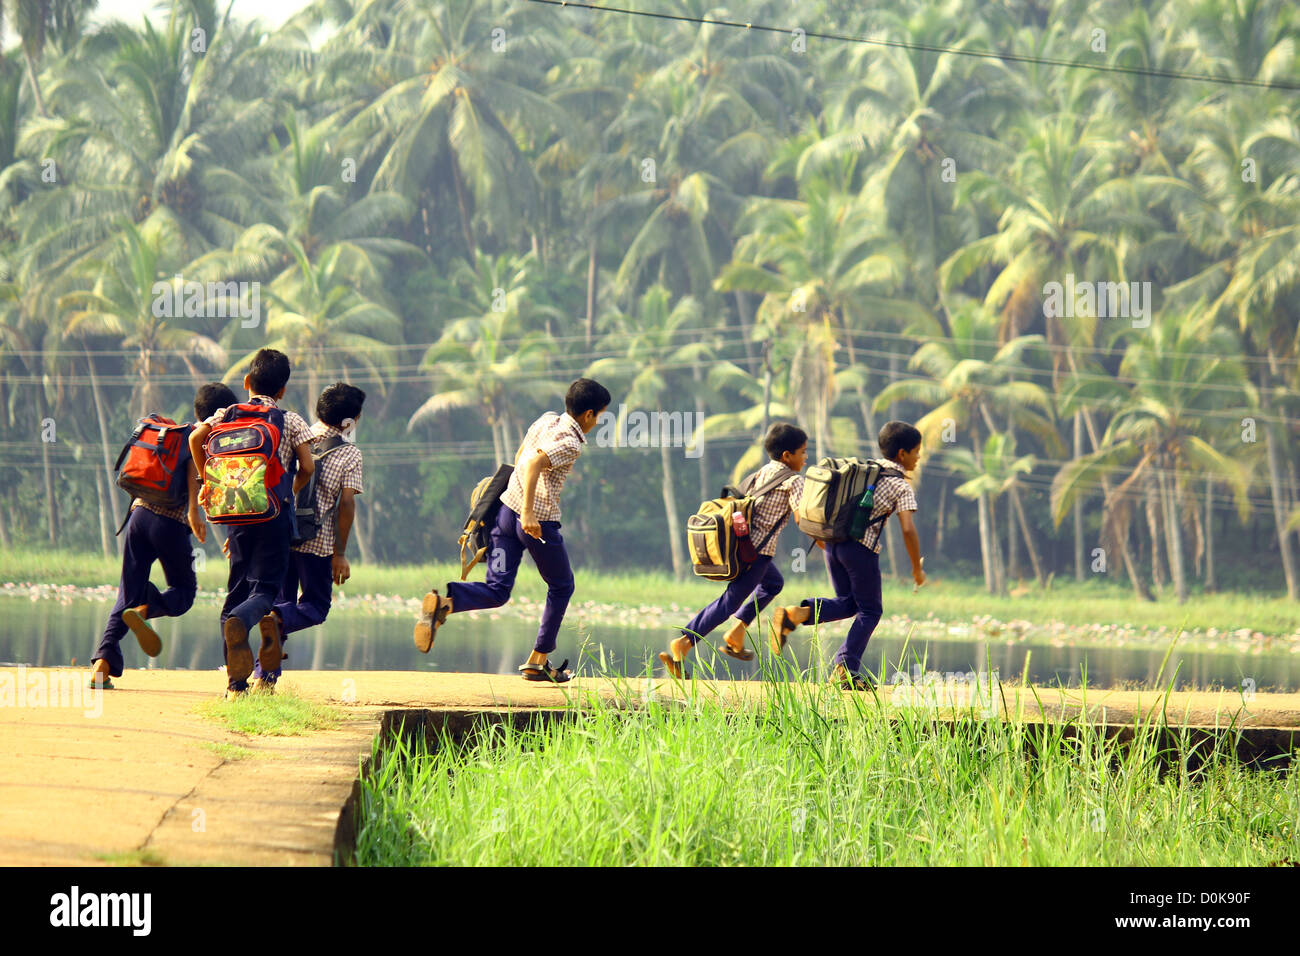 School children running to school in rural kerala - Stock Image